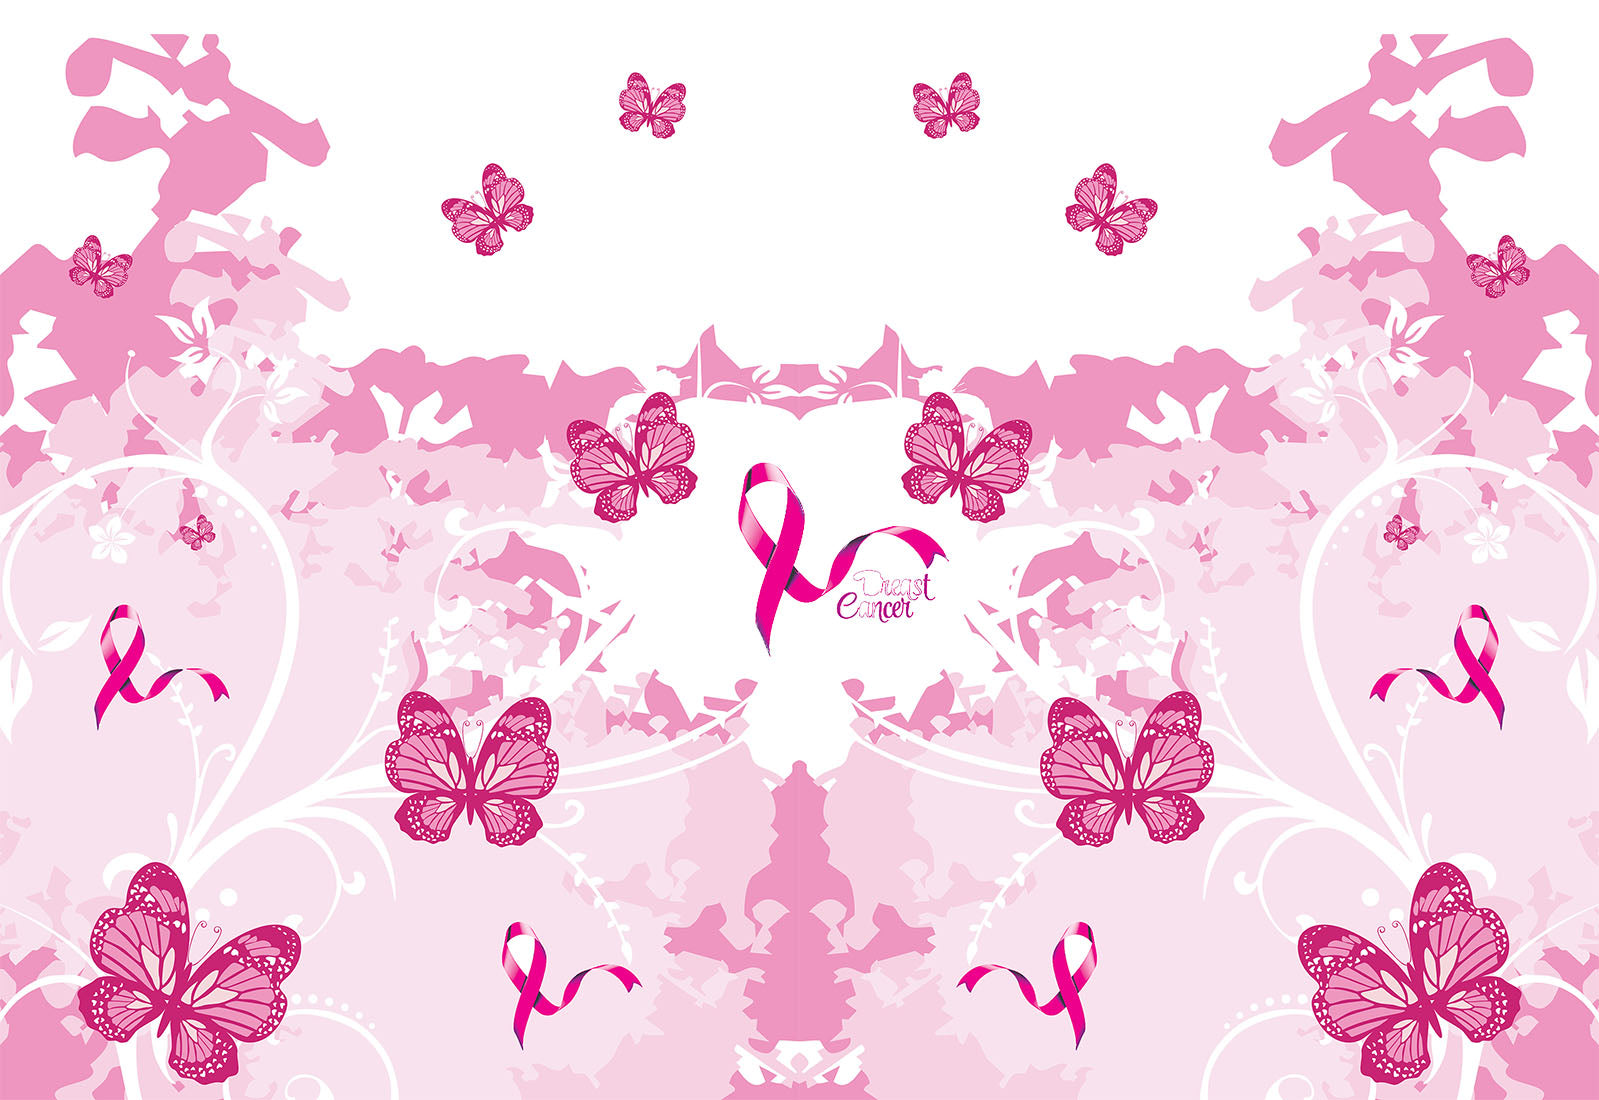 Cancer Fabric Breast Cancer Fabric Awareness Fabric Pink Butterfly Cotton Or Fleece 5792